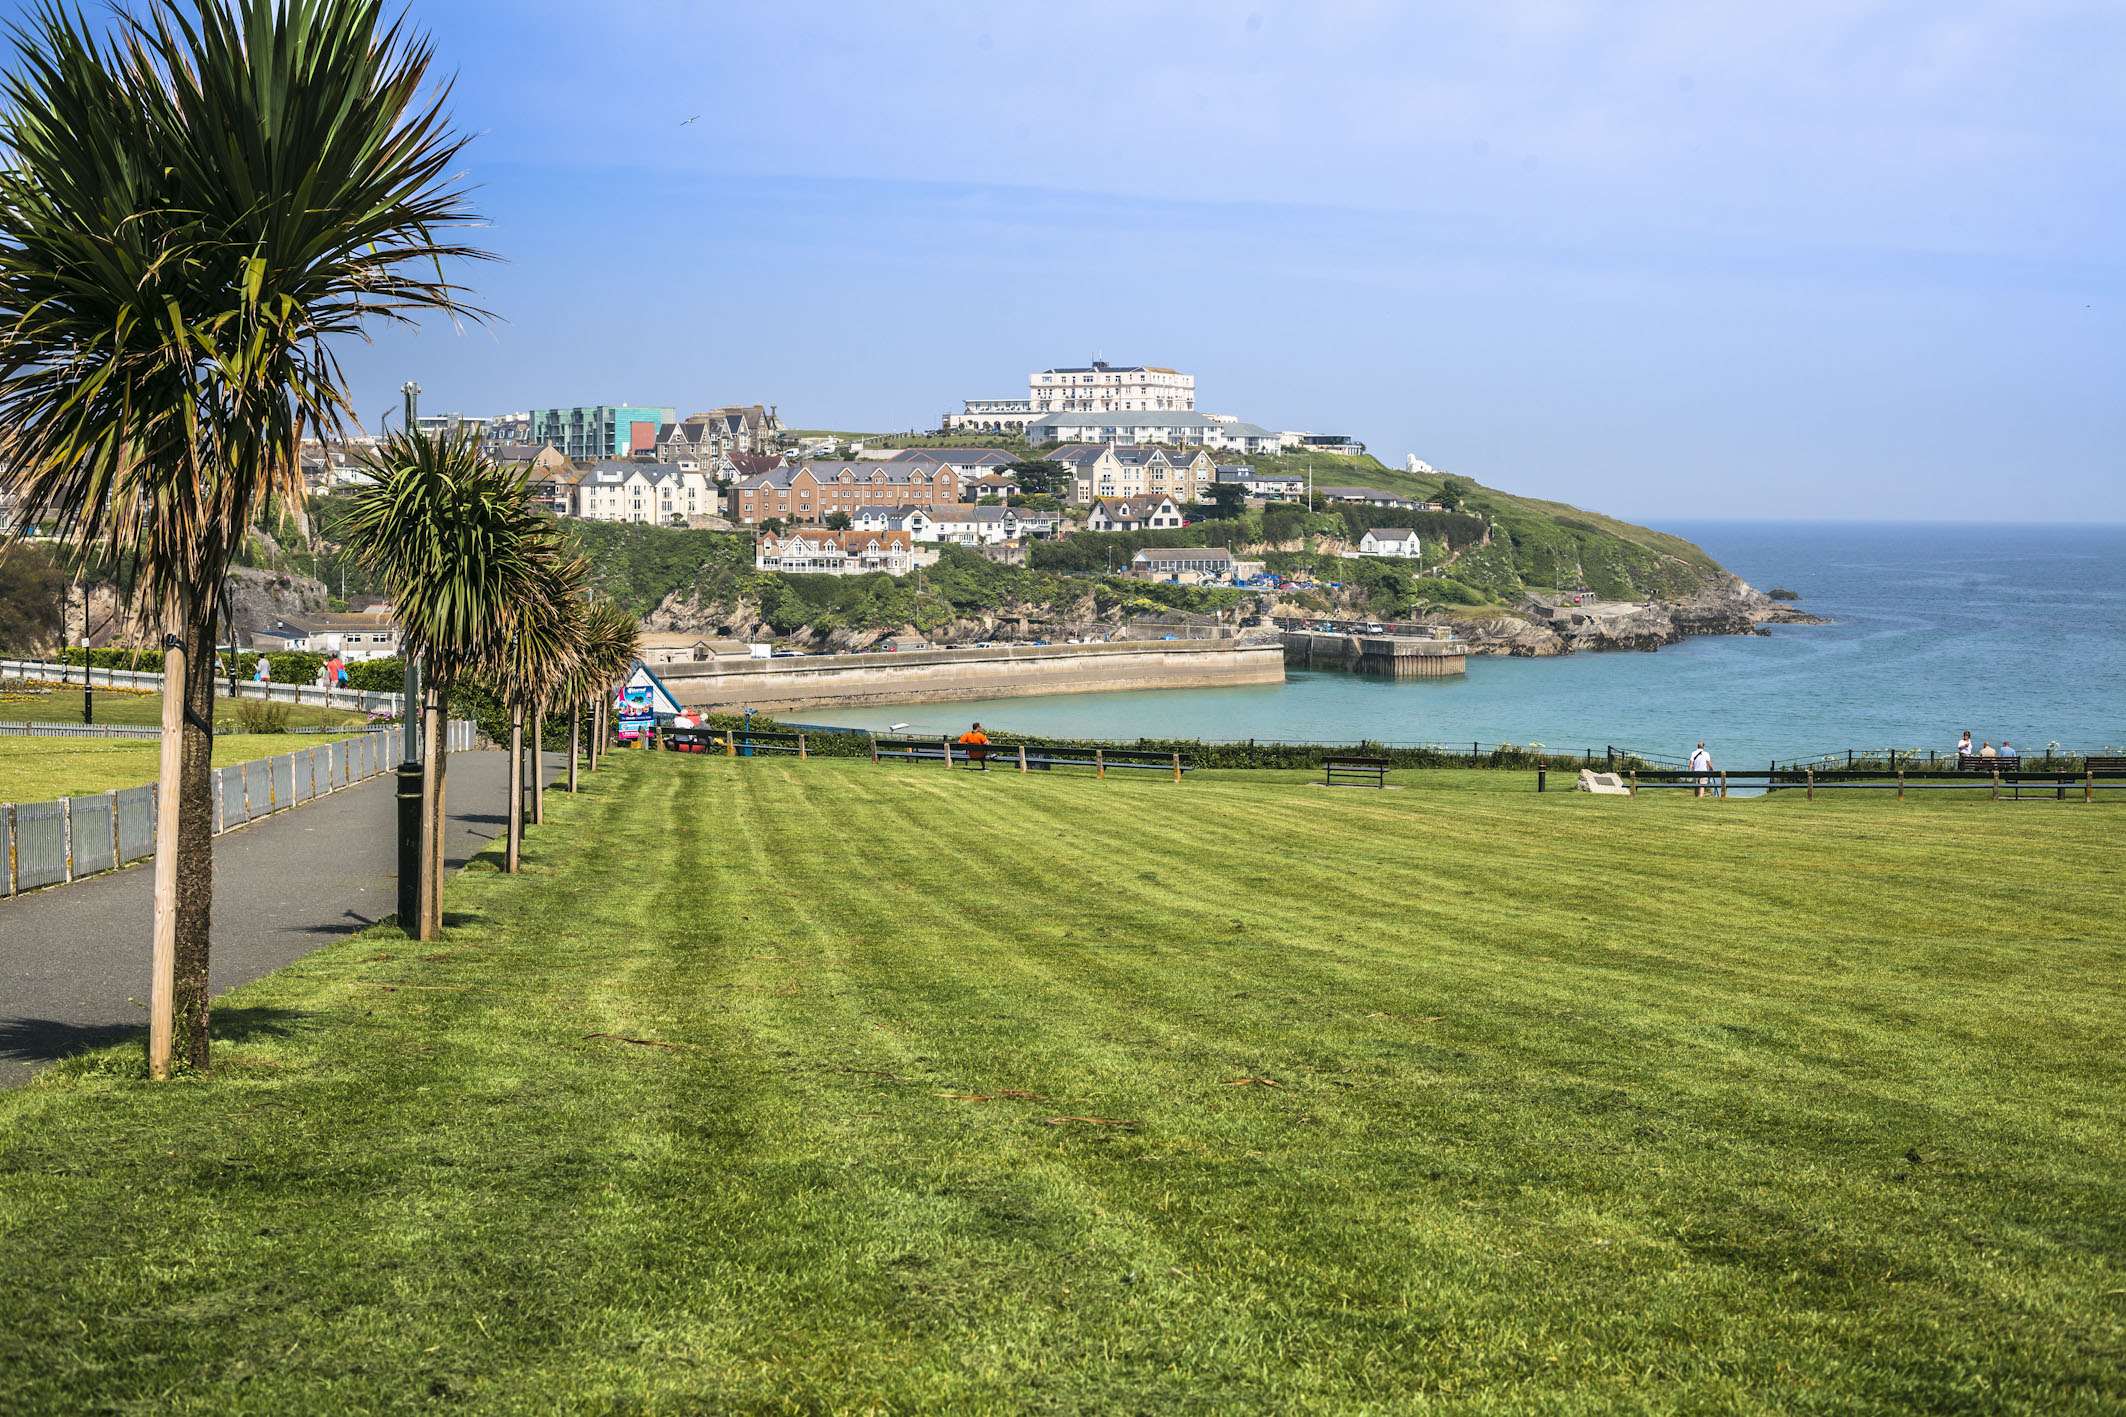 Newquay events